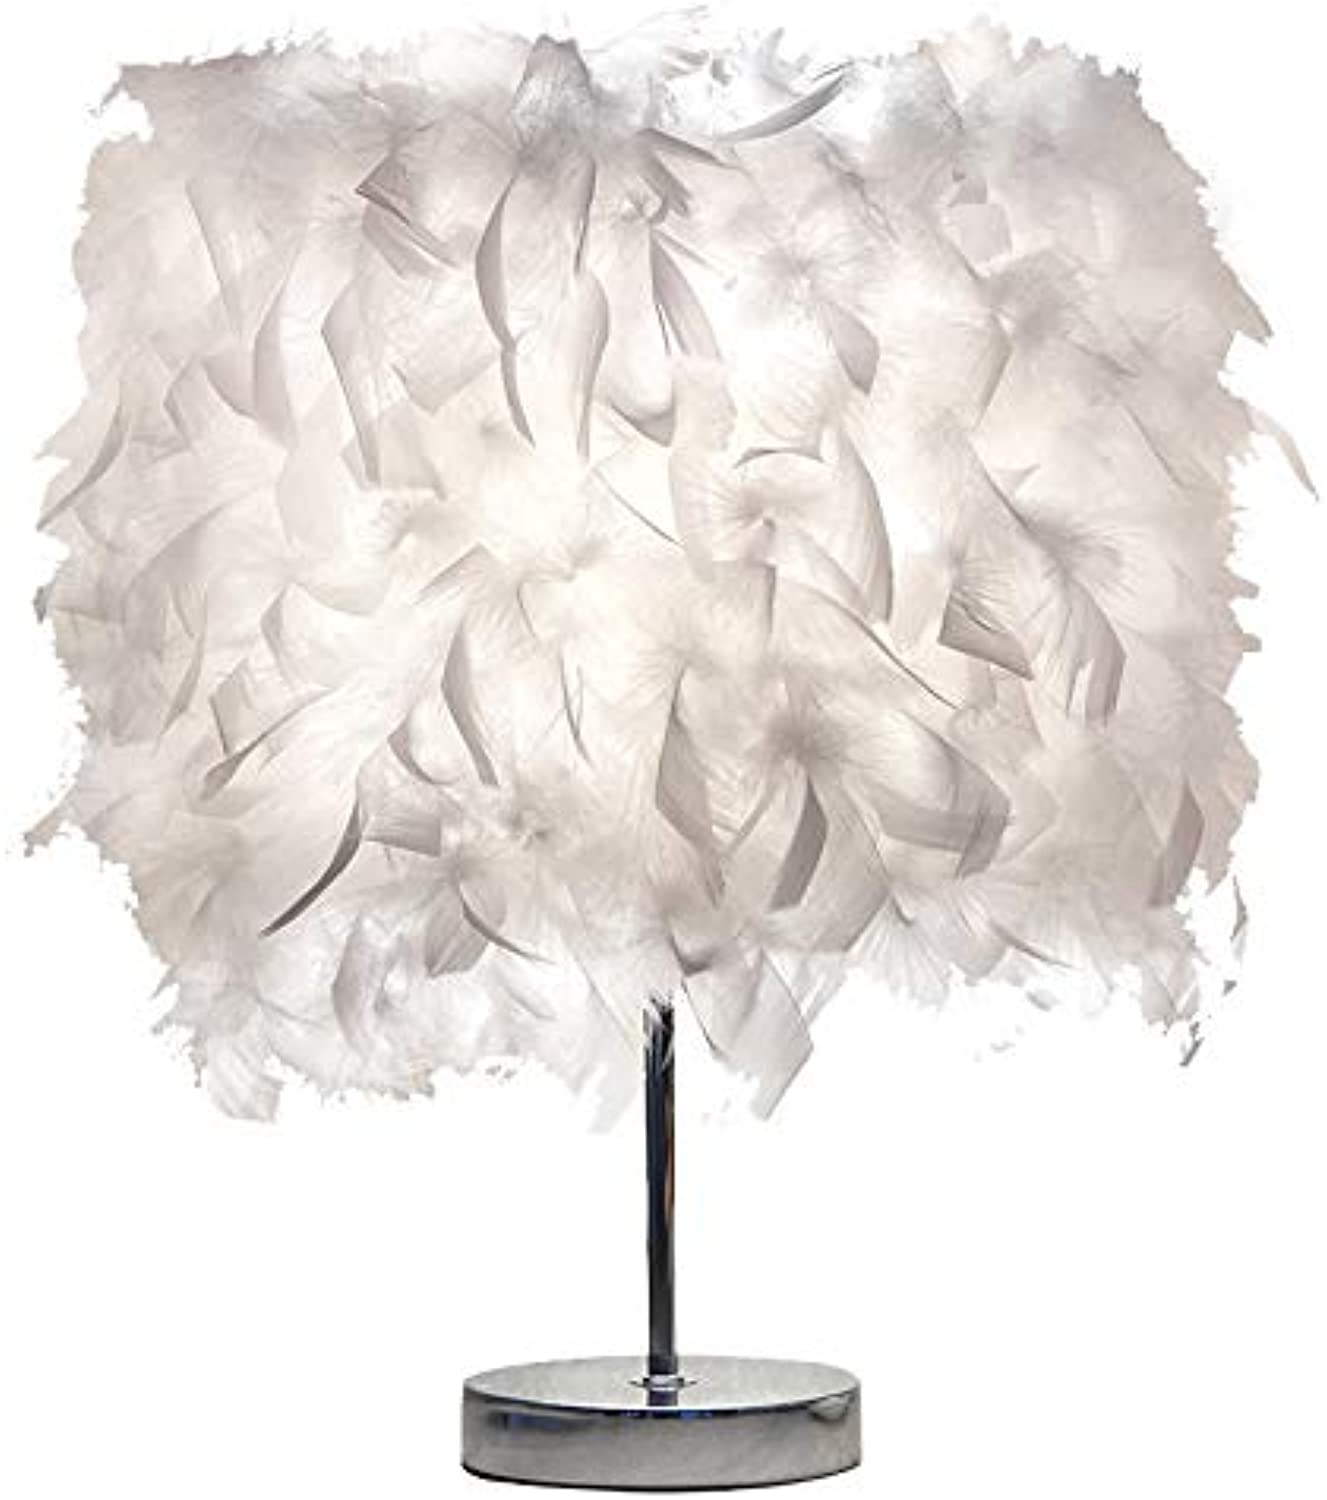 Feather Table Lamp Bedroom Headlamp Simple Modern Romantic Creative European Princess Wedding Room Warm Light Warm Bedside Lamp